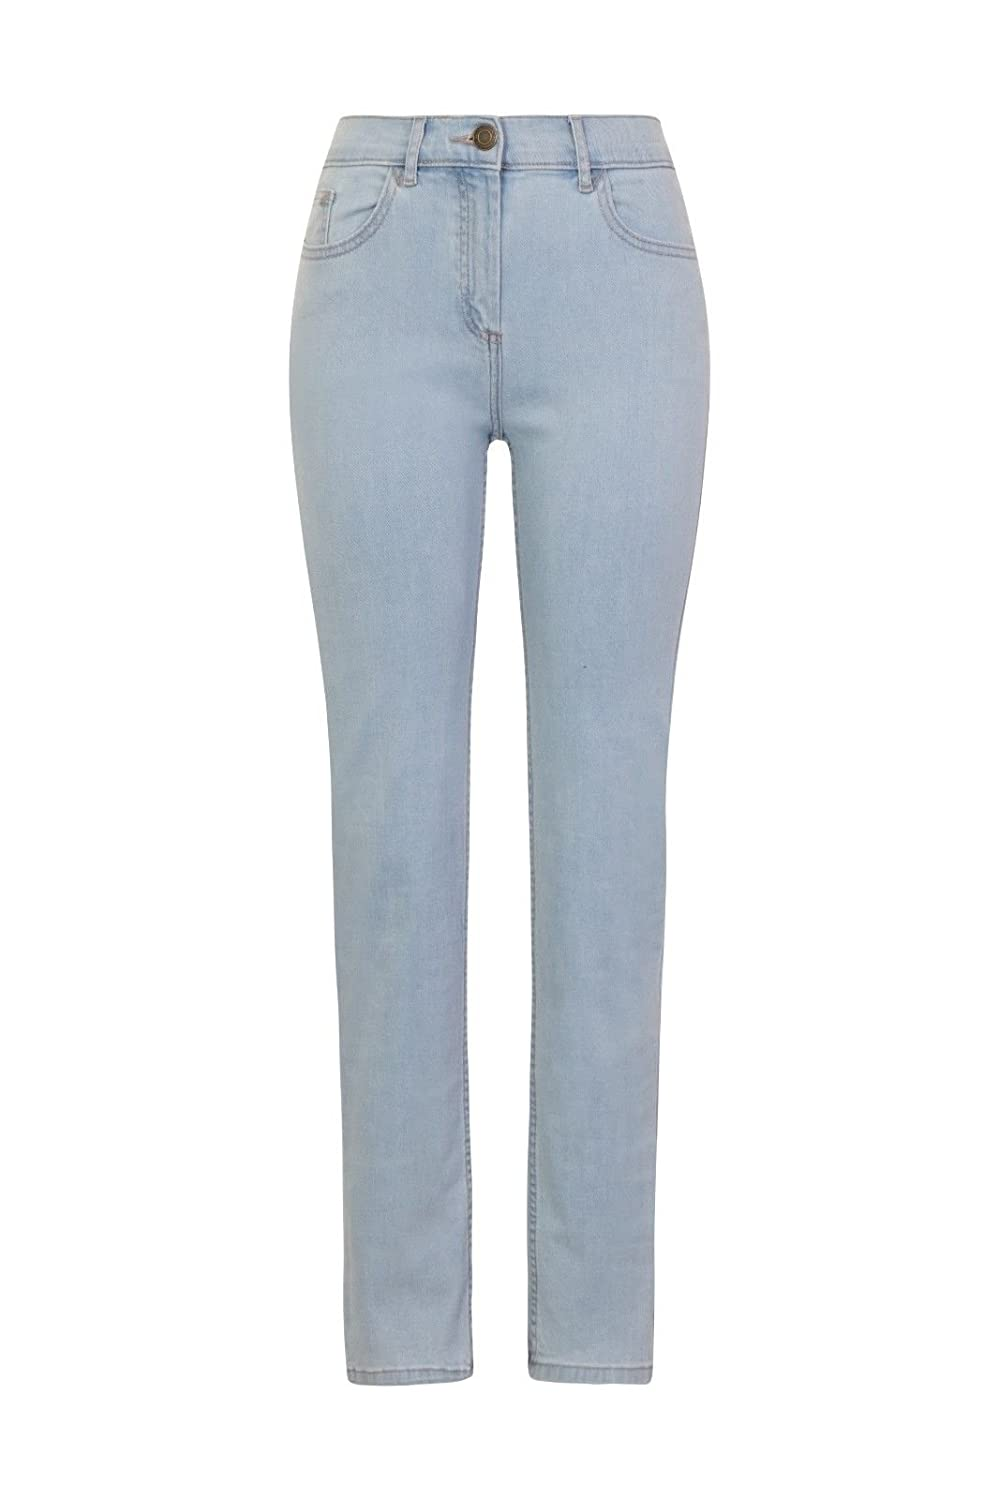 Fashion Apparel for Women Mid Rise Cotton Denim with Added Stretch Ex High Street Brand Ladies Straight Leg Jeans